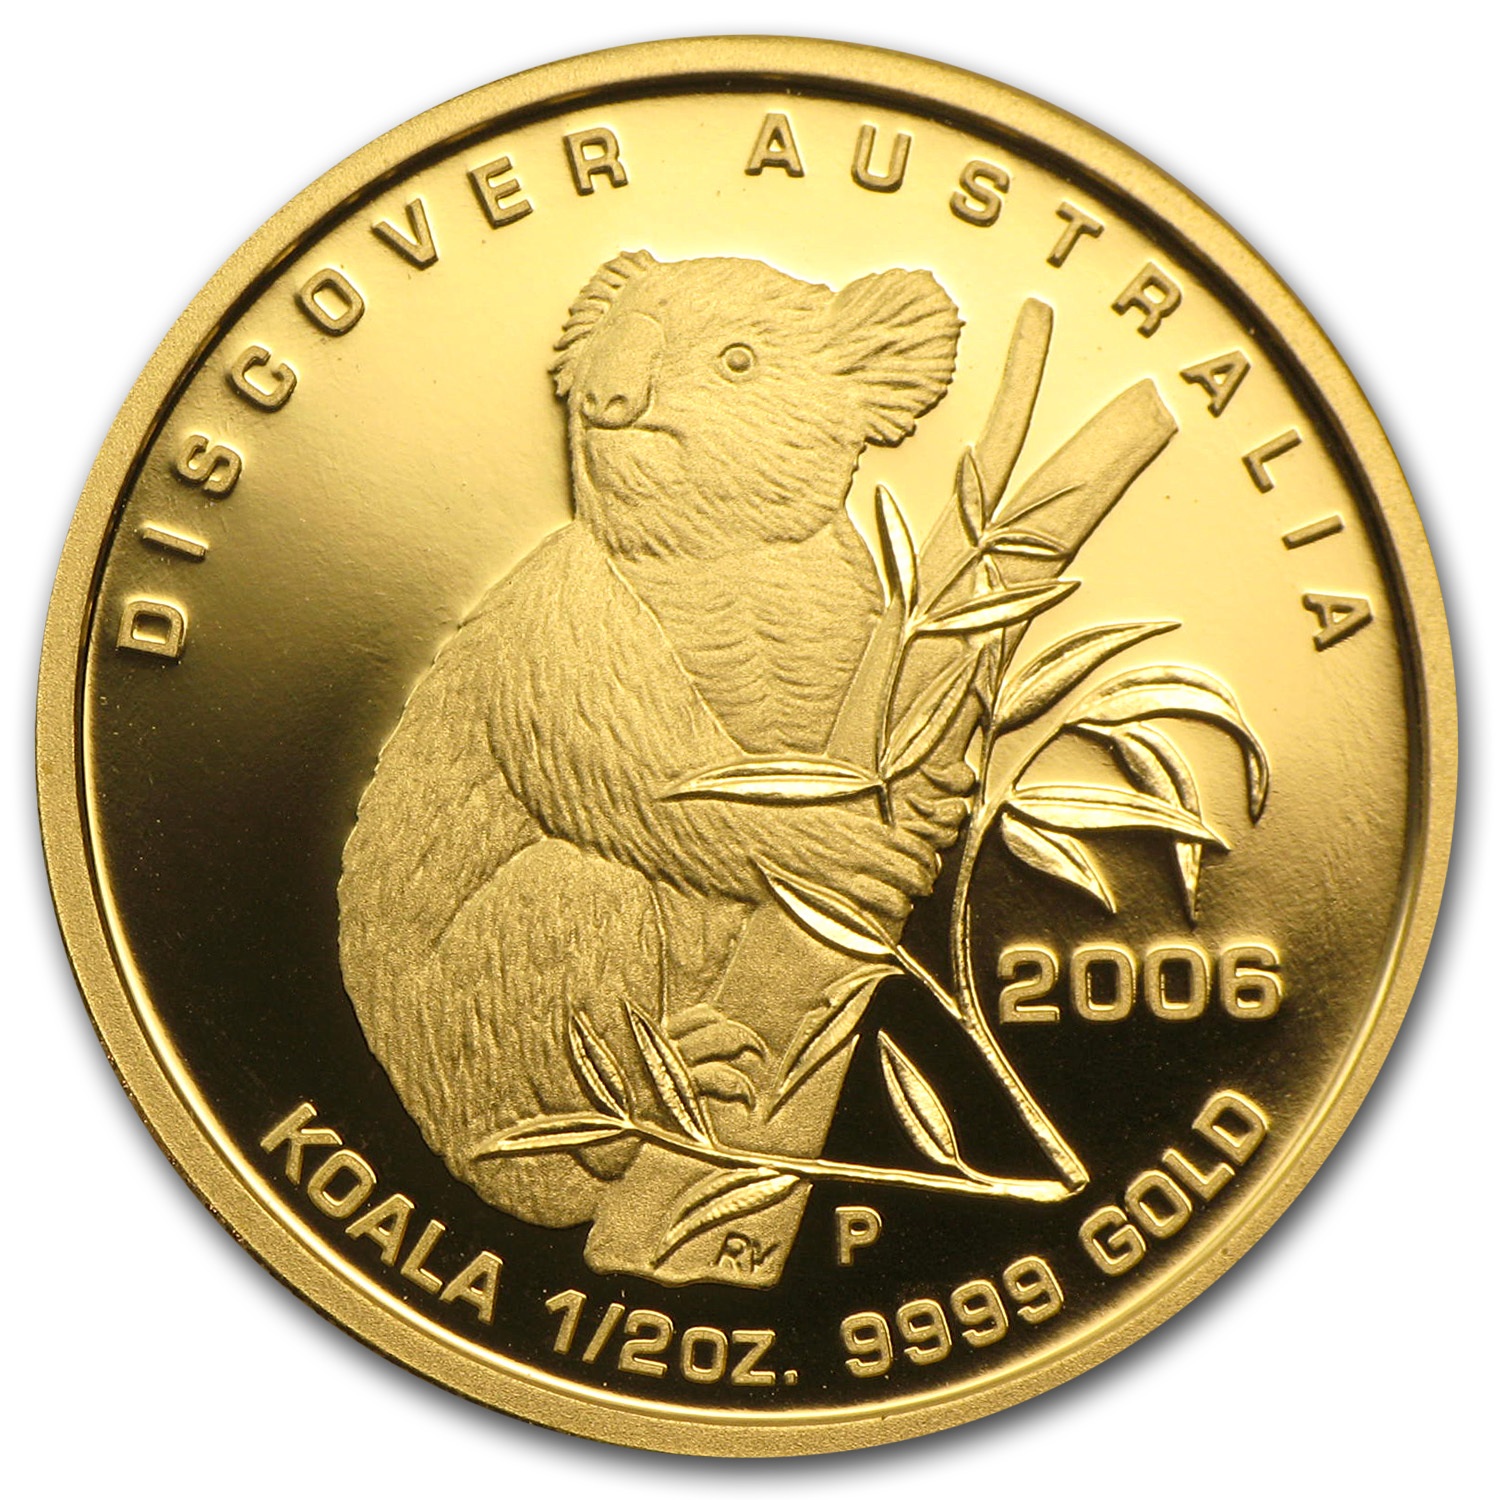 how to buy an oz of gold